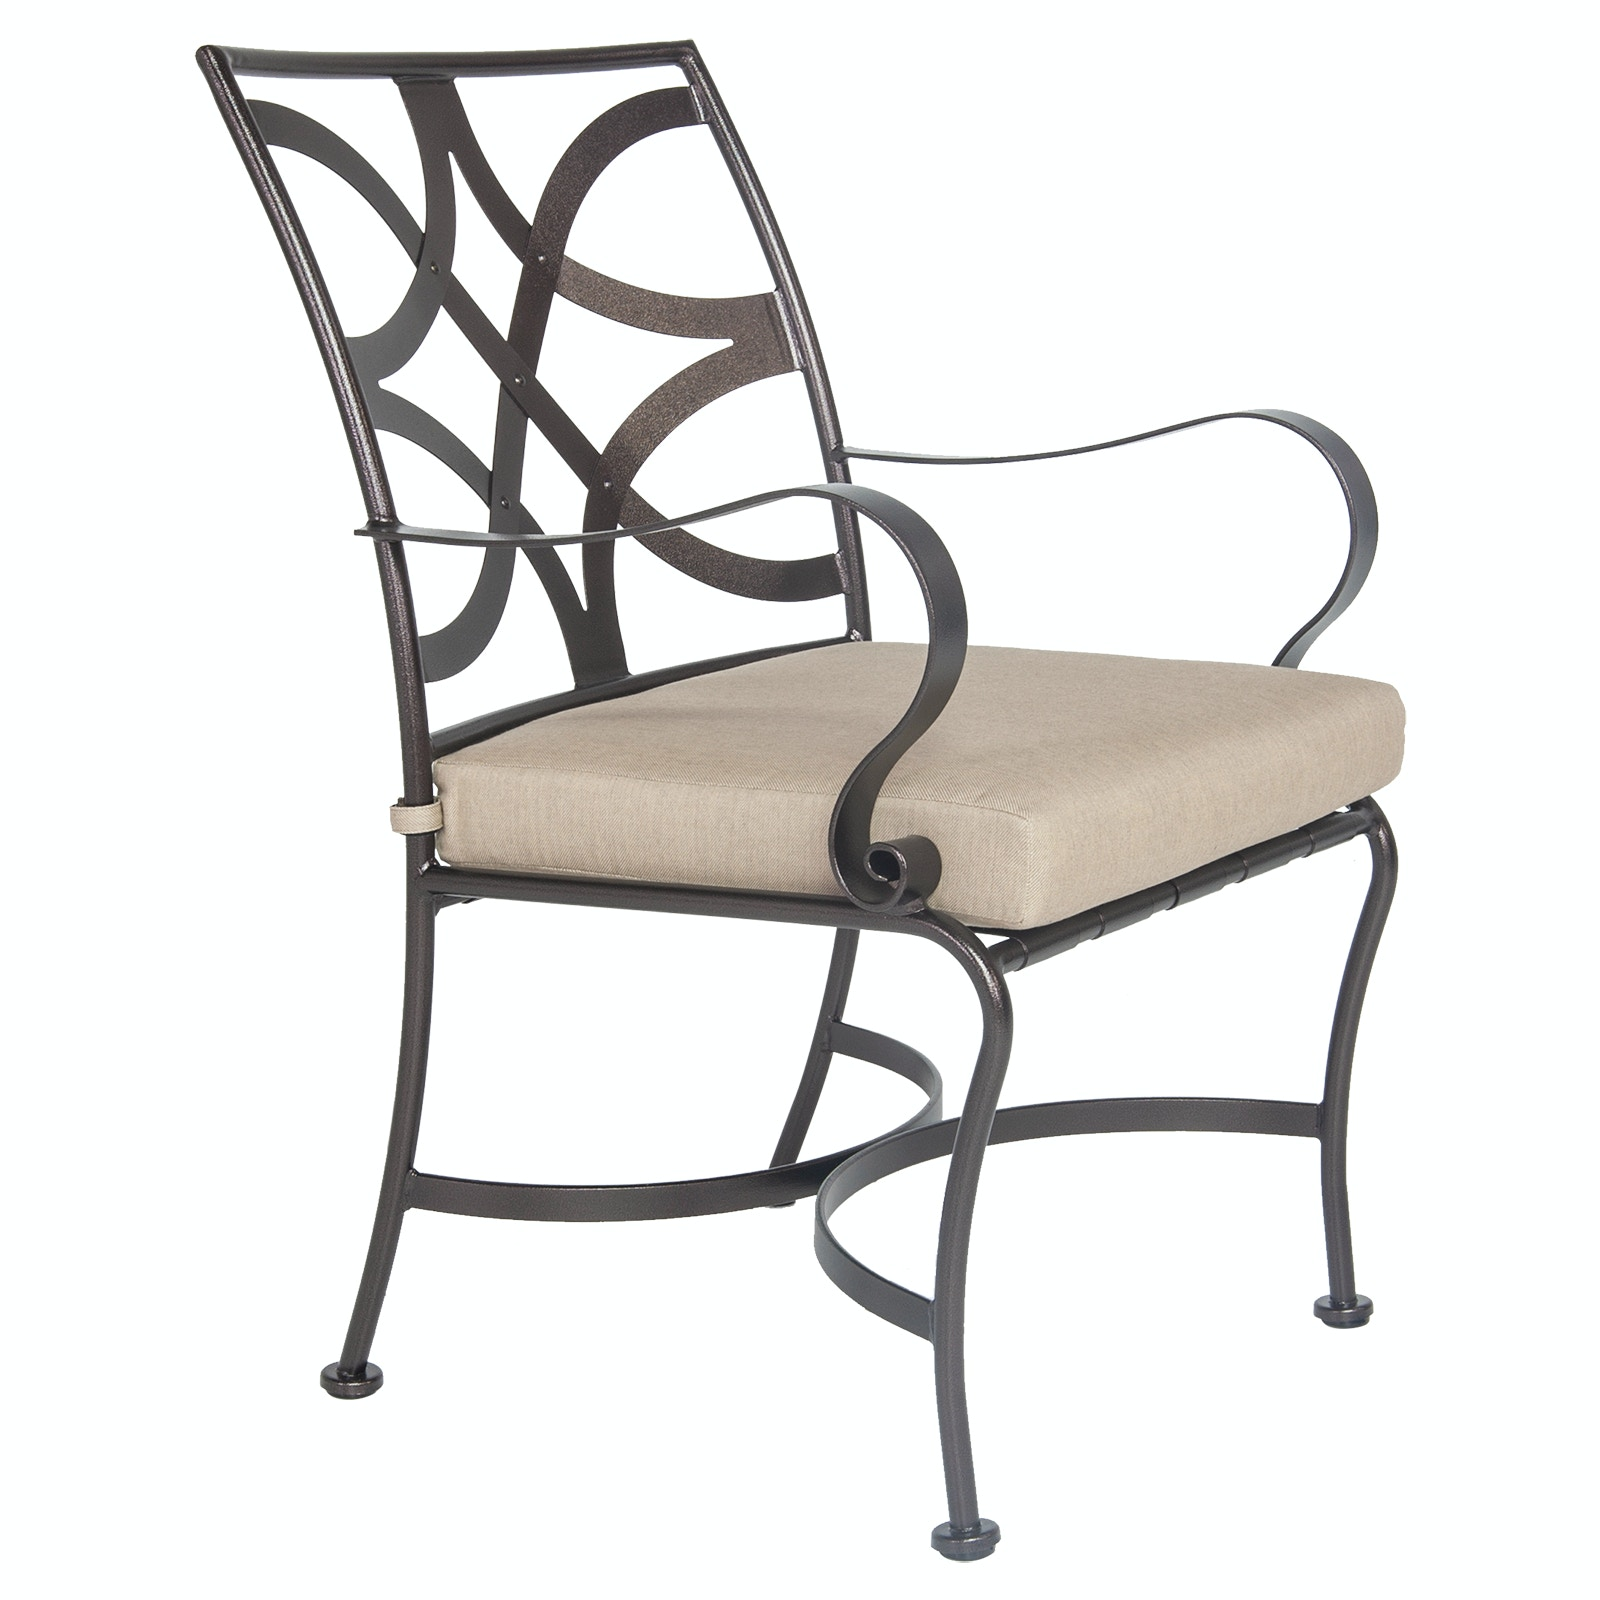 OW Lee Furniture Marquette Dining Arm Chair 2053 A